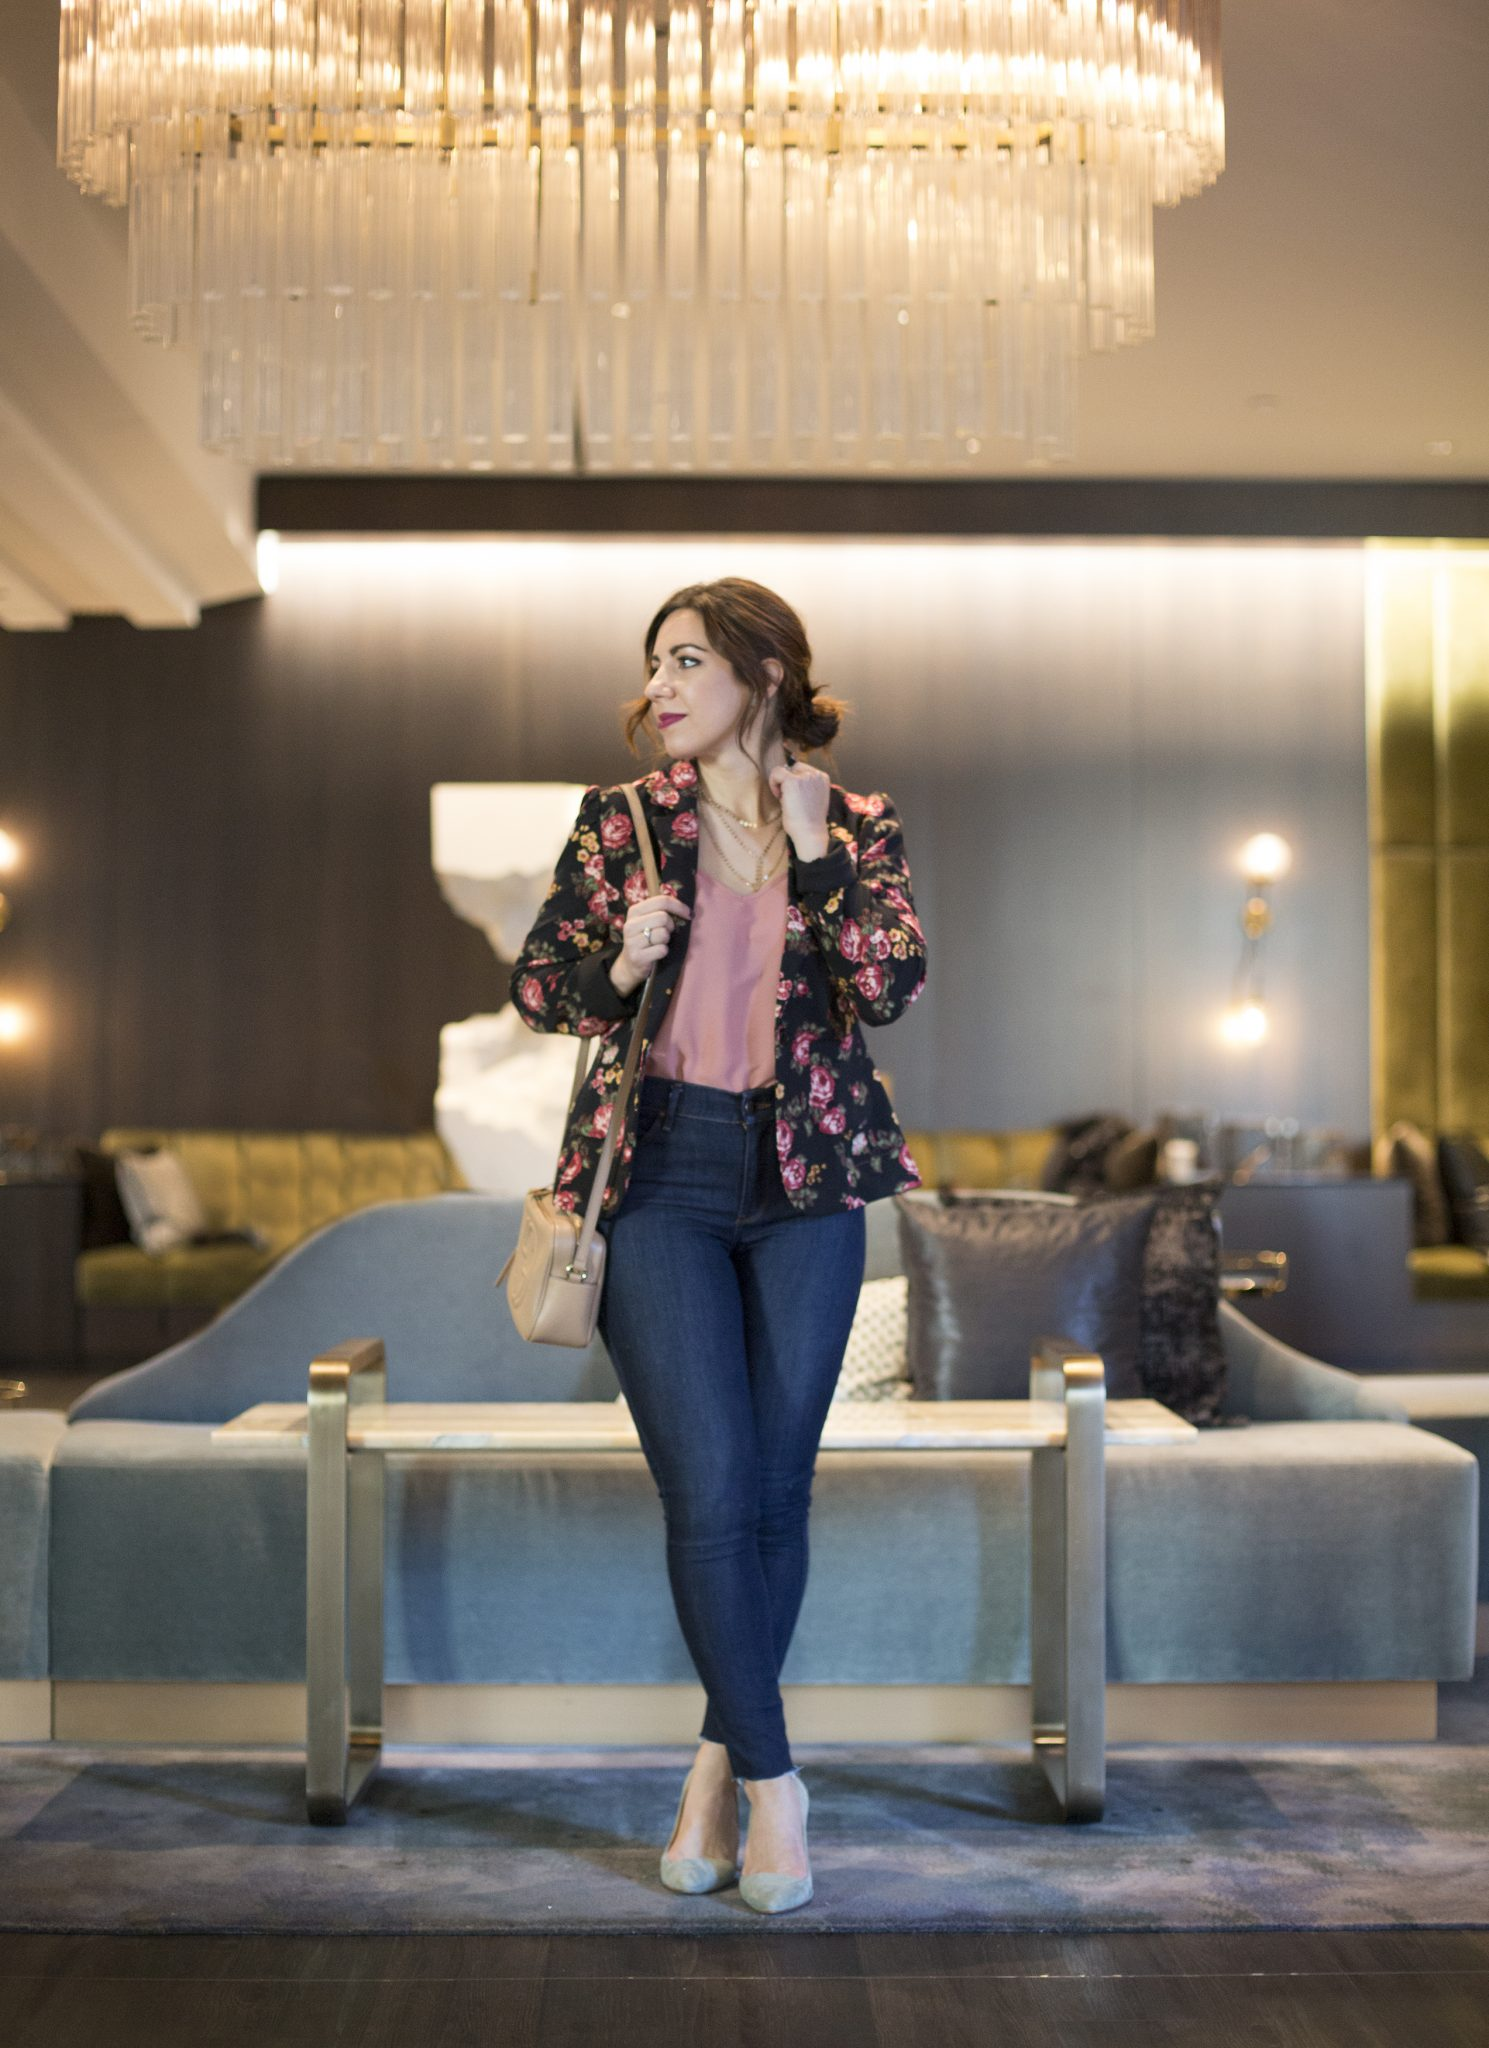 Lifestyle blogger Roxanne of Glass of Glam wearing a Modcloth floral blazer, Mott + Bow denim, Madewell heels, a Gucci Soho Disco bag, and Baublebar necklace